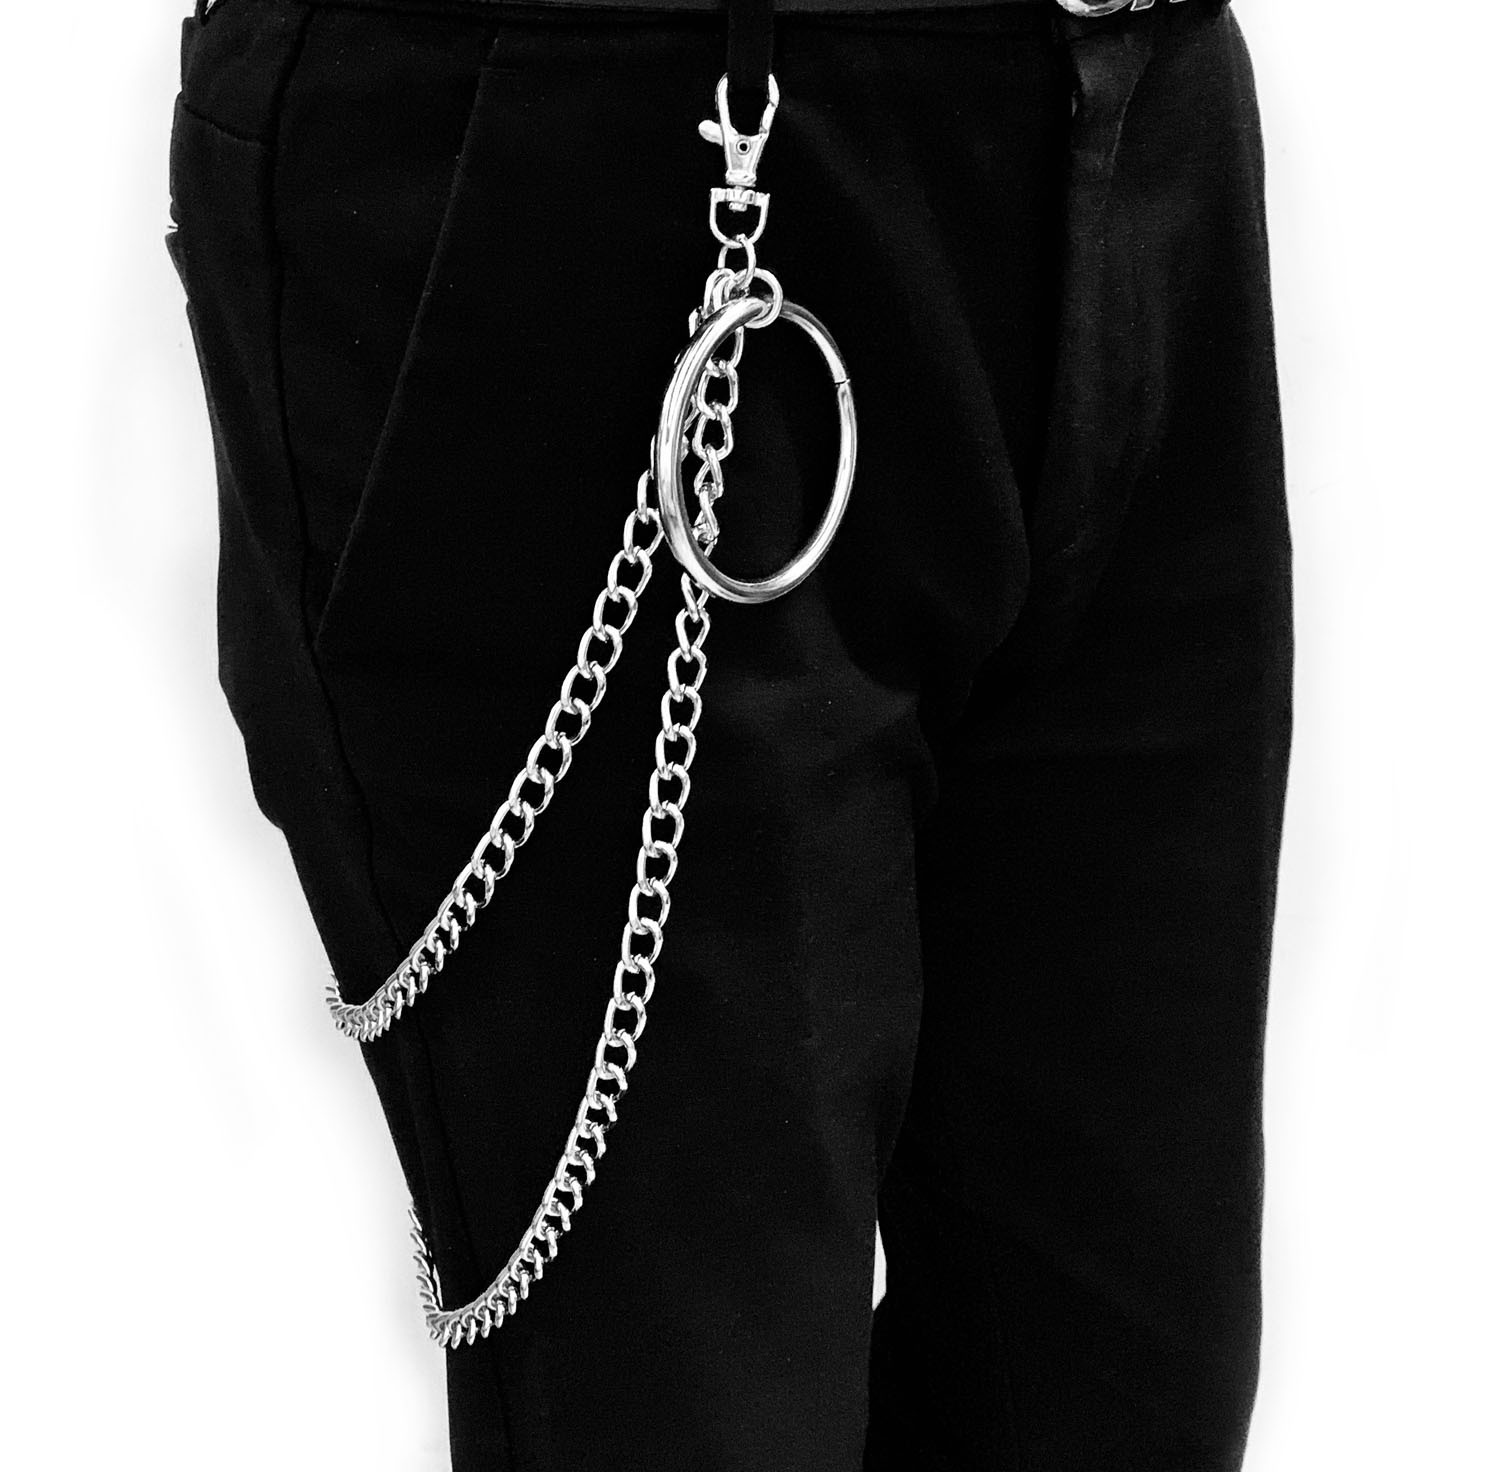 Fashion Punk Hip-hop Trendy Belt Waist Chain Male Pants Chain Men Jeans Punk Silver Metal Trousers Chains YE17